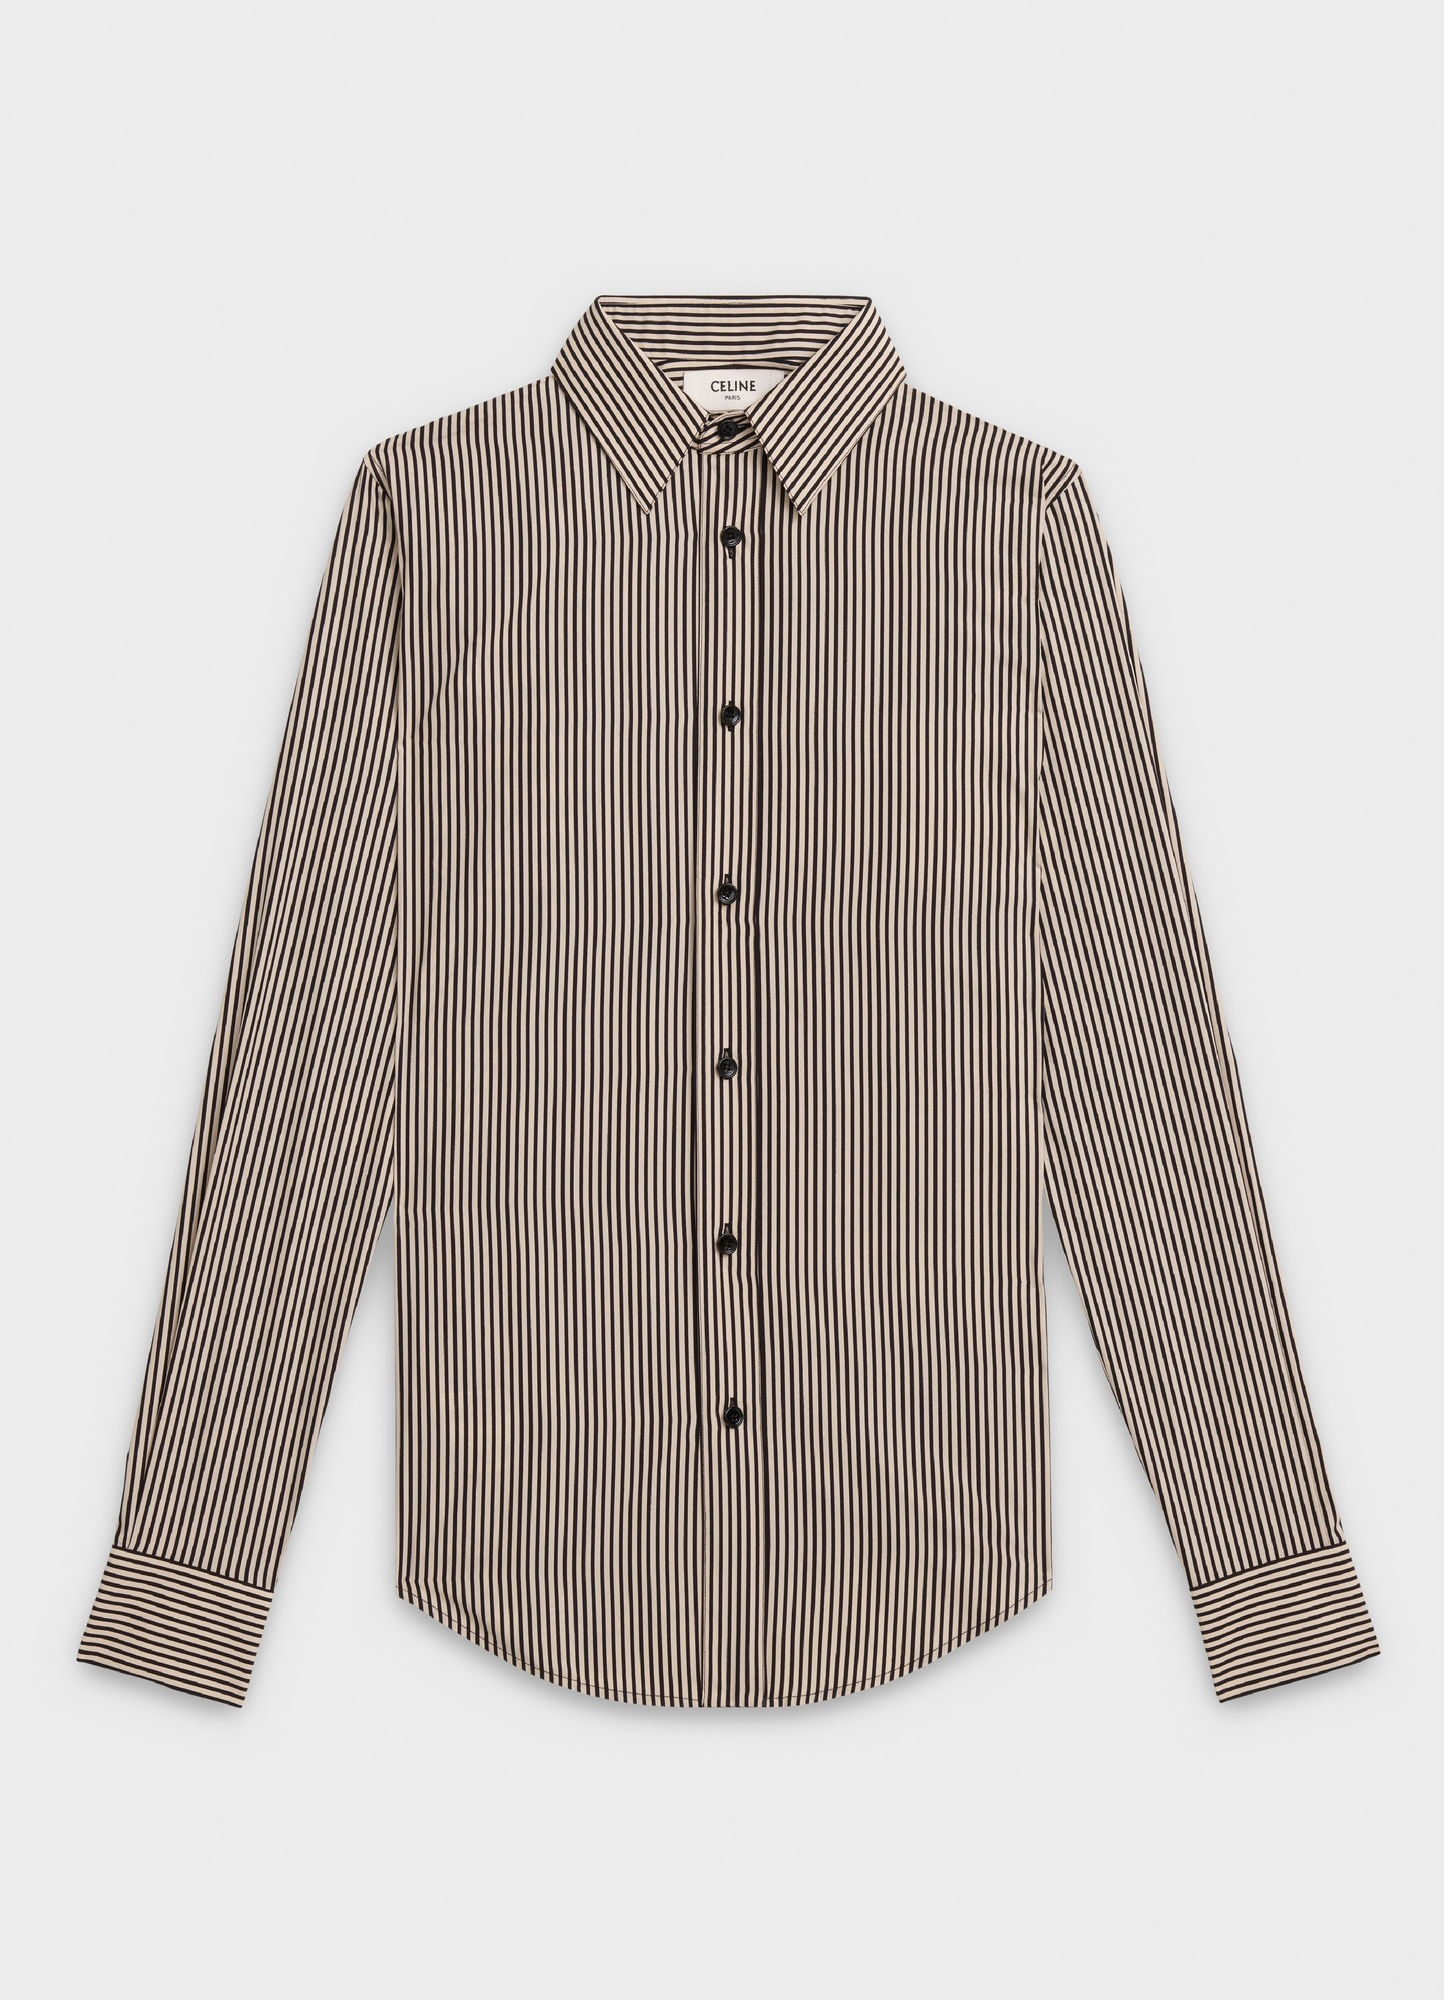 SKINNY SHIRT IN TWO-TONED STRIPED COTTON WITH DRUGSTORE COLLAR   720 USD